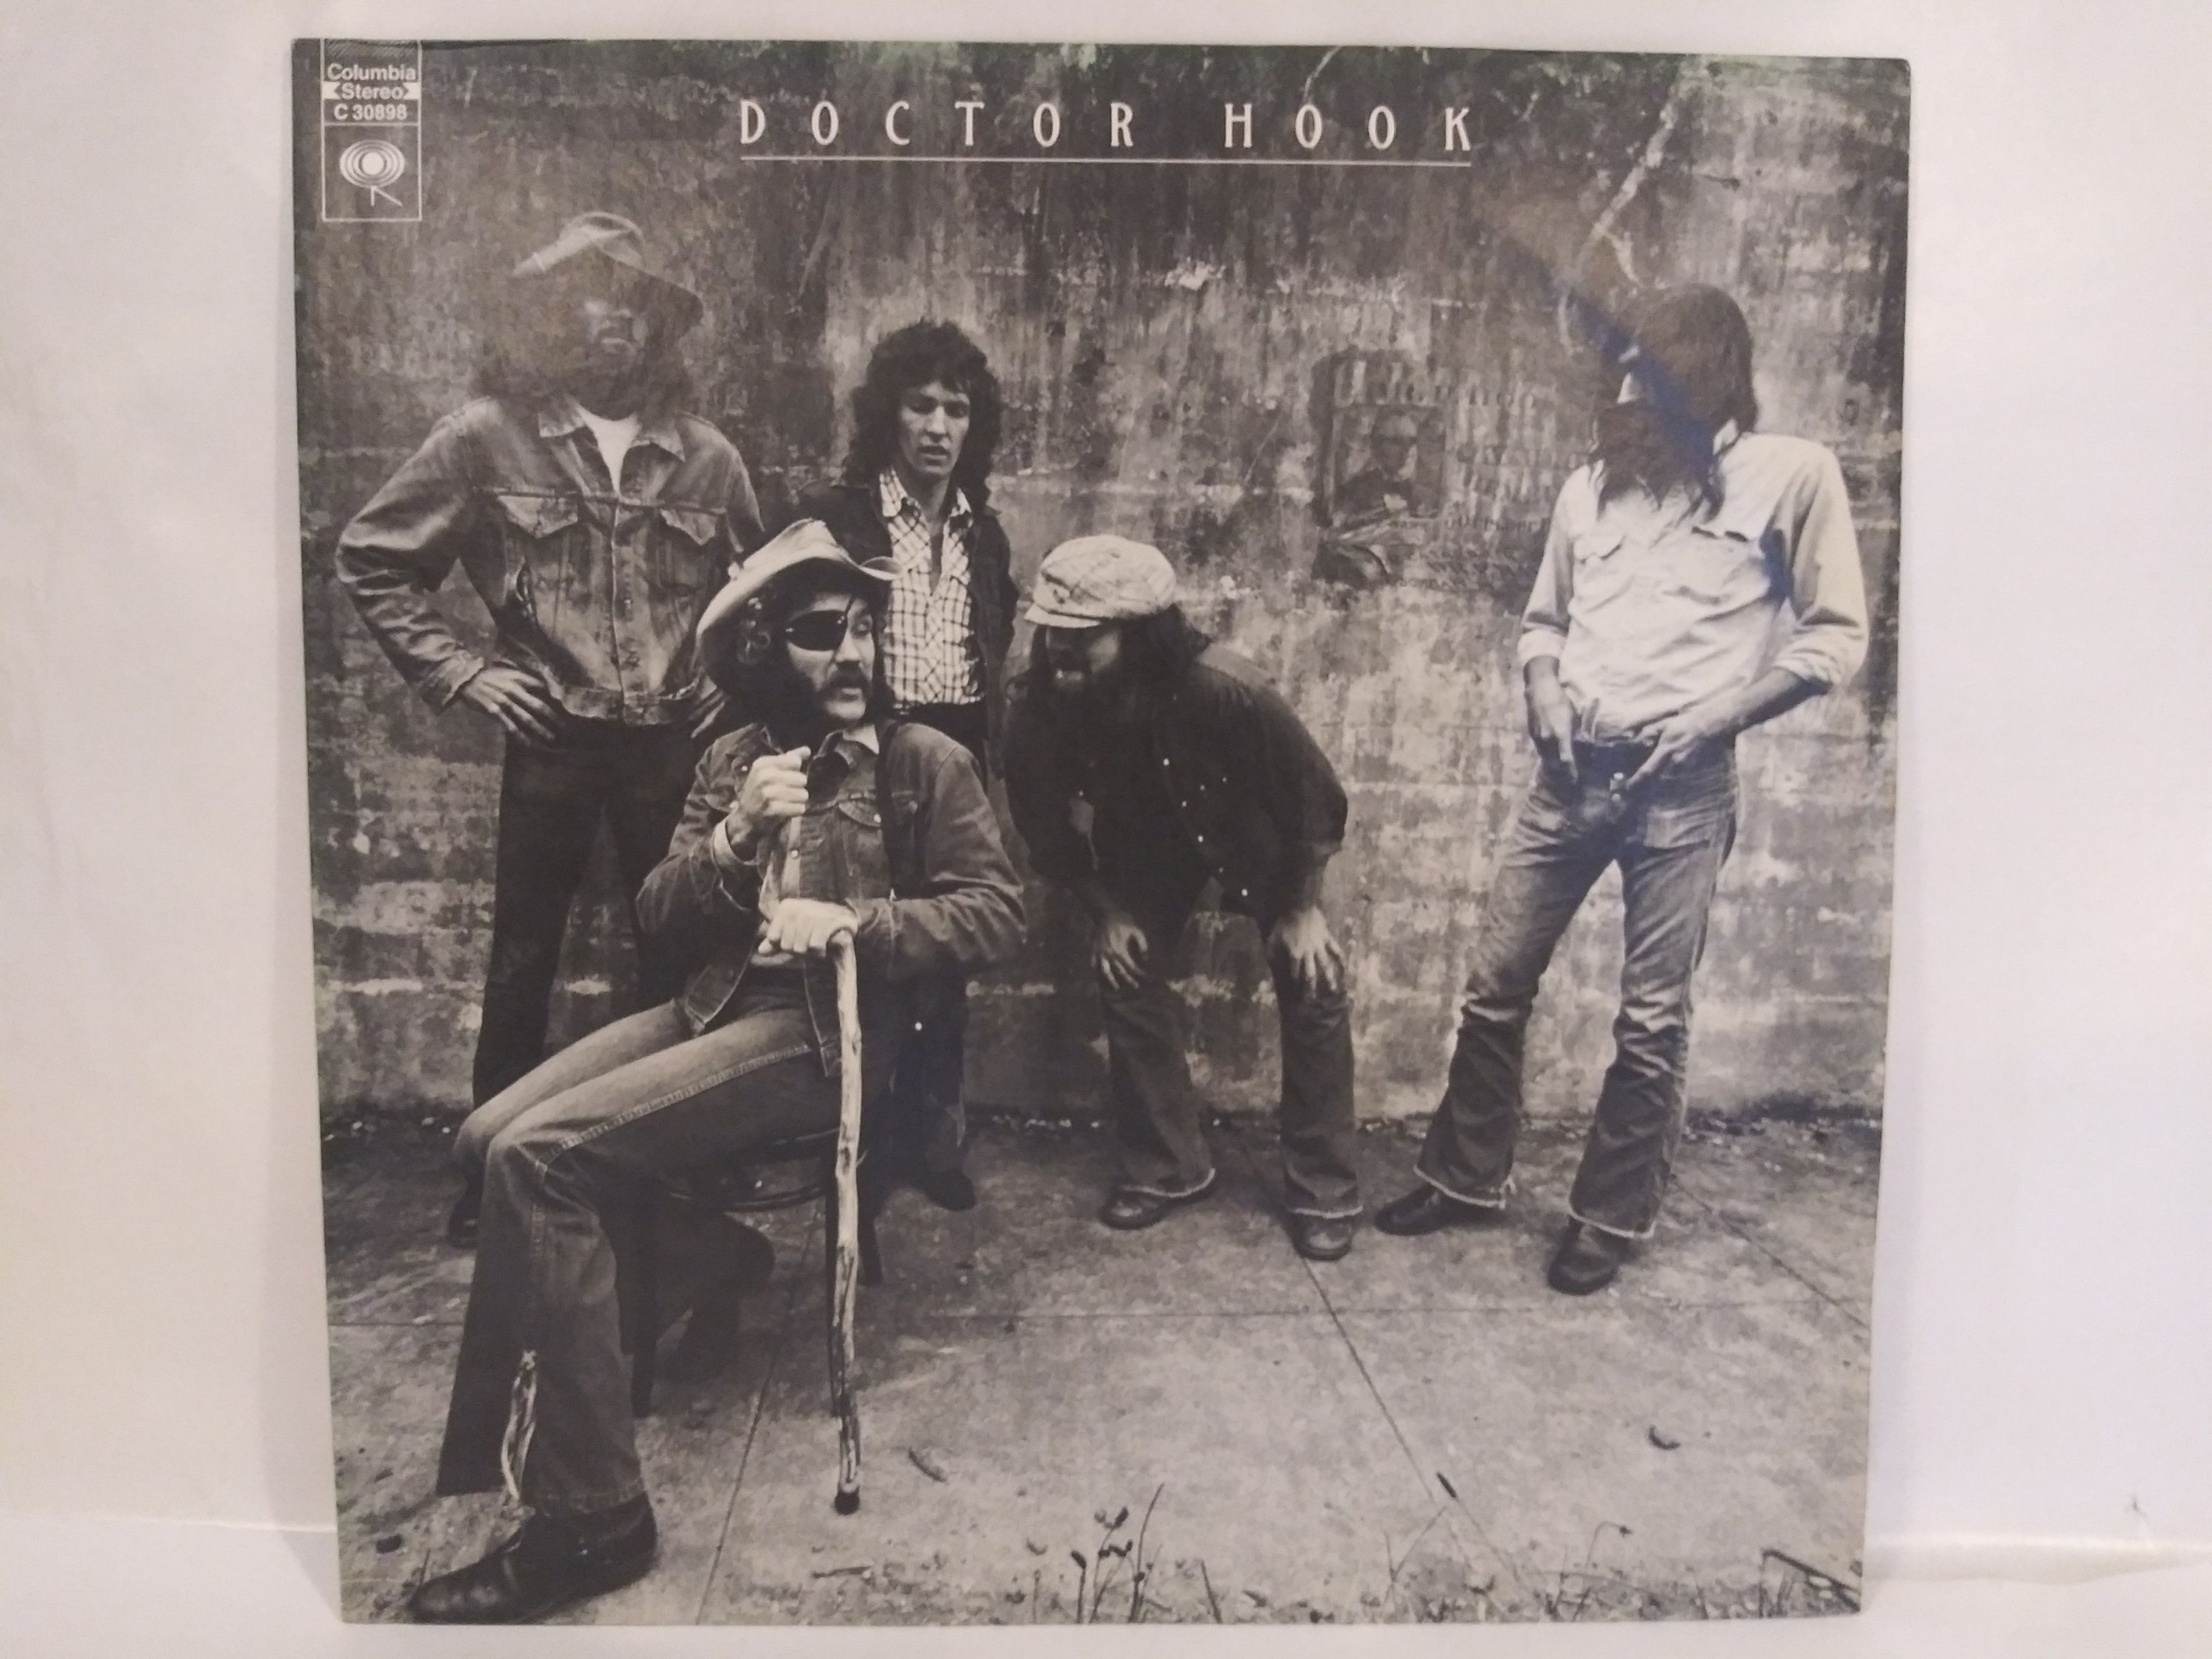 Dr Hook And The Medicine Show Near Mint 1st Pressing Vinyl Record In 2020 Vinyl Records Vinyl Medicine